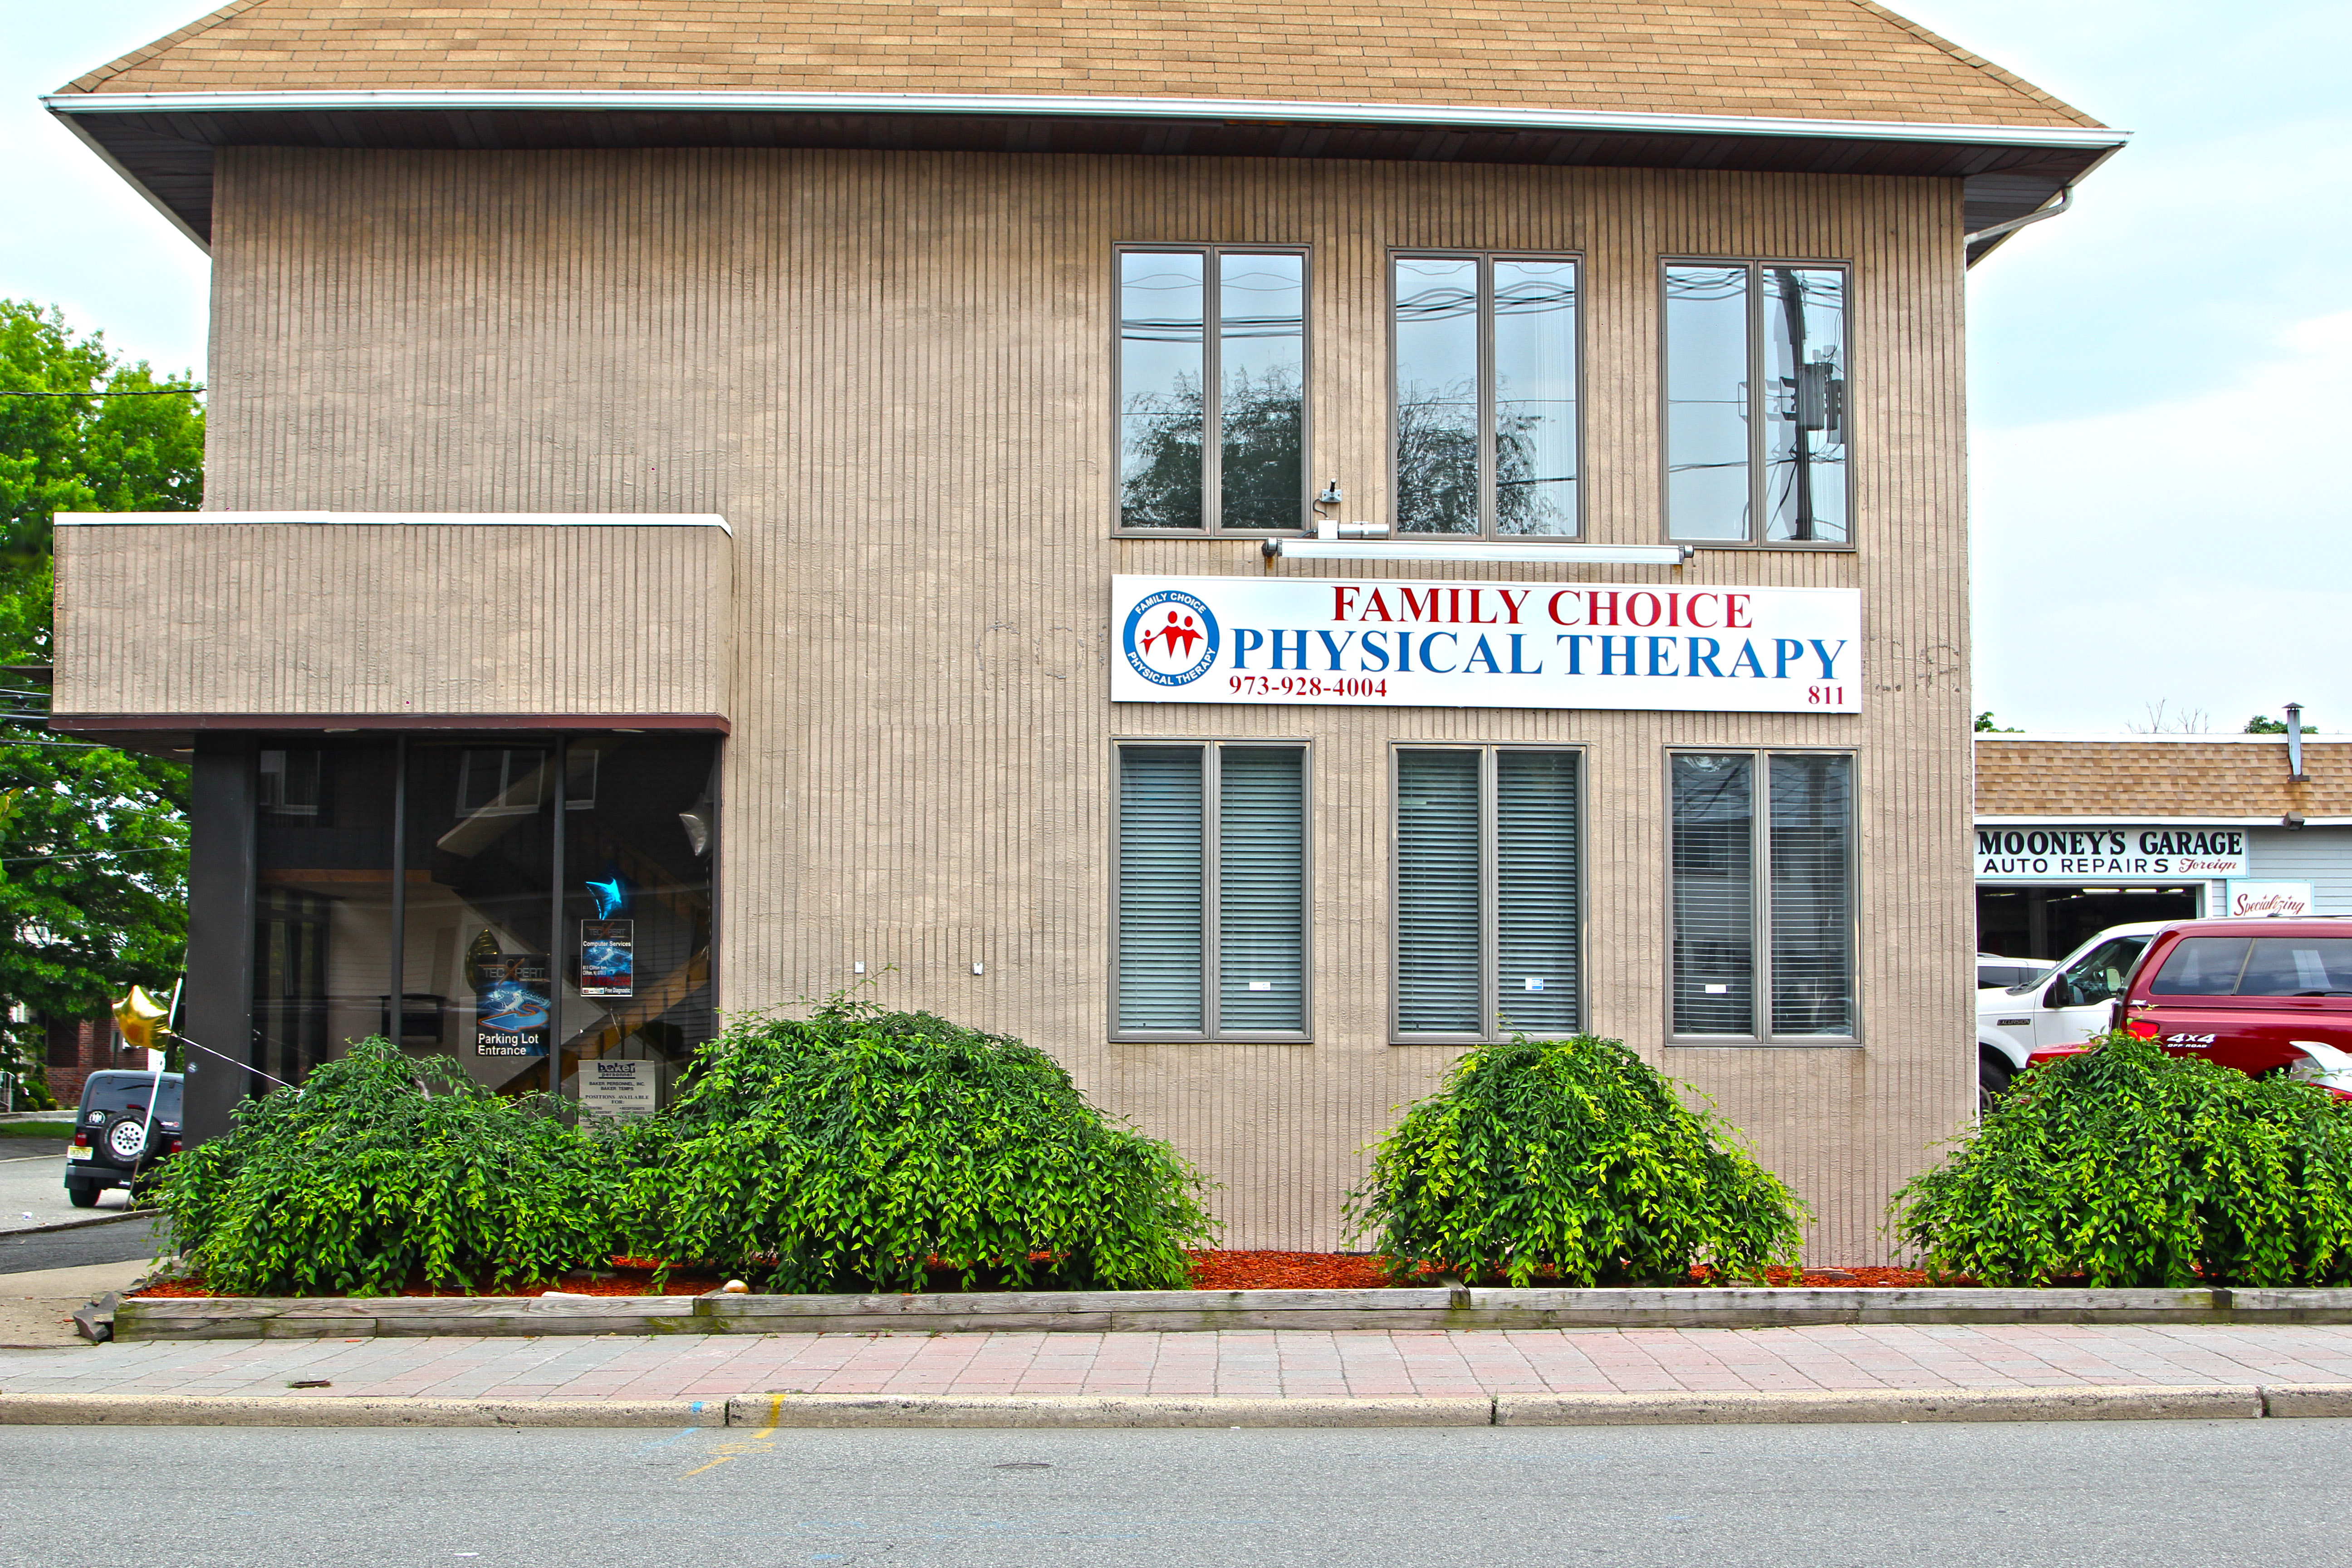 Clifton park physical therapy - Family Choice Physical Therapy